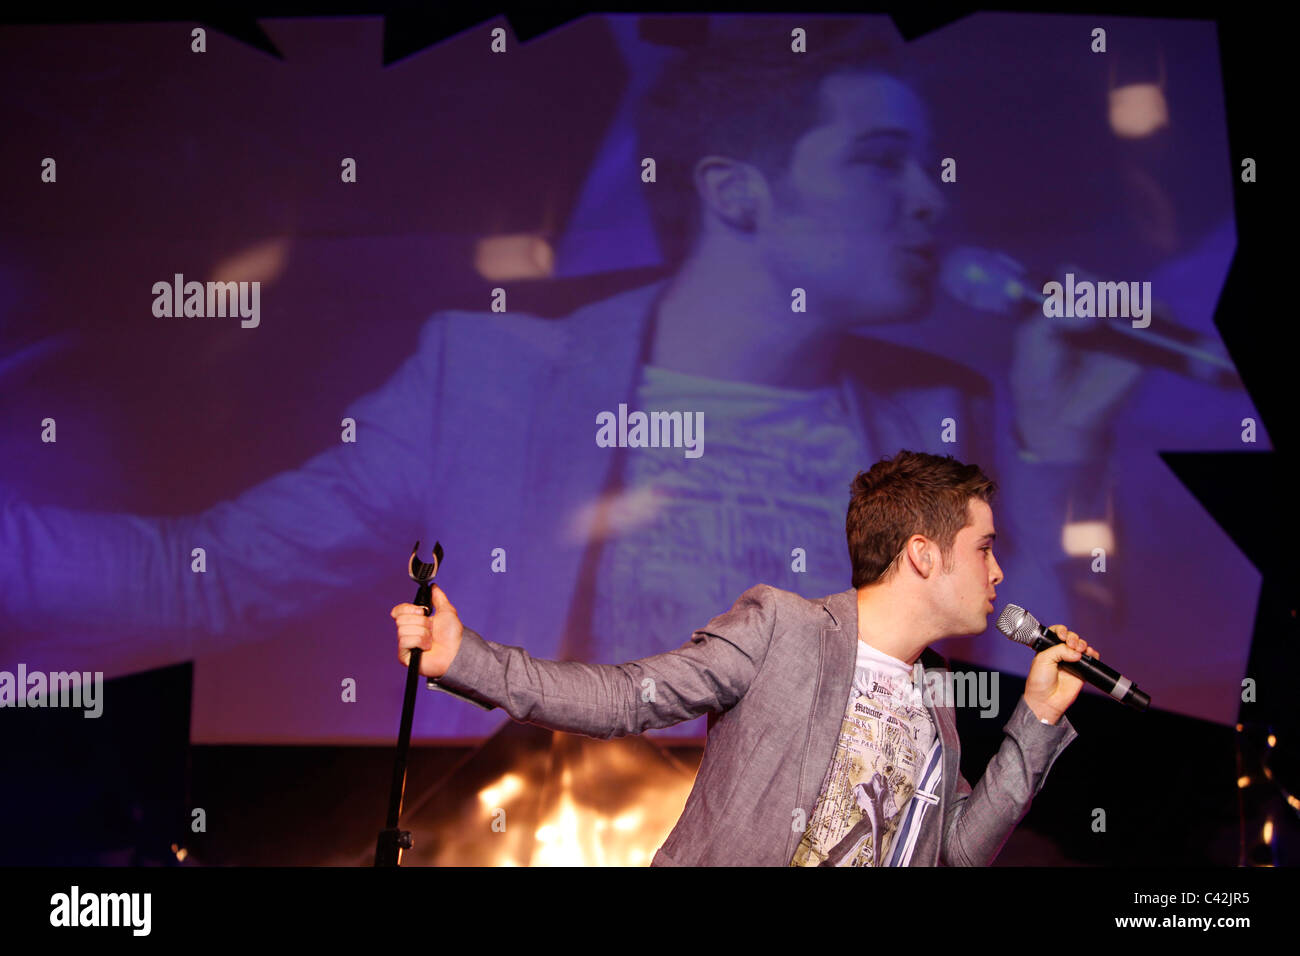 2009 X Factor winner Joe McElderry sings on stage at Glasgow's 'Glam in the City' event - Stock Image